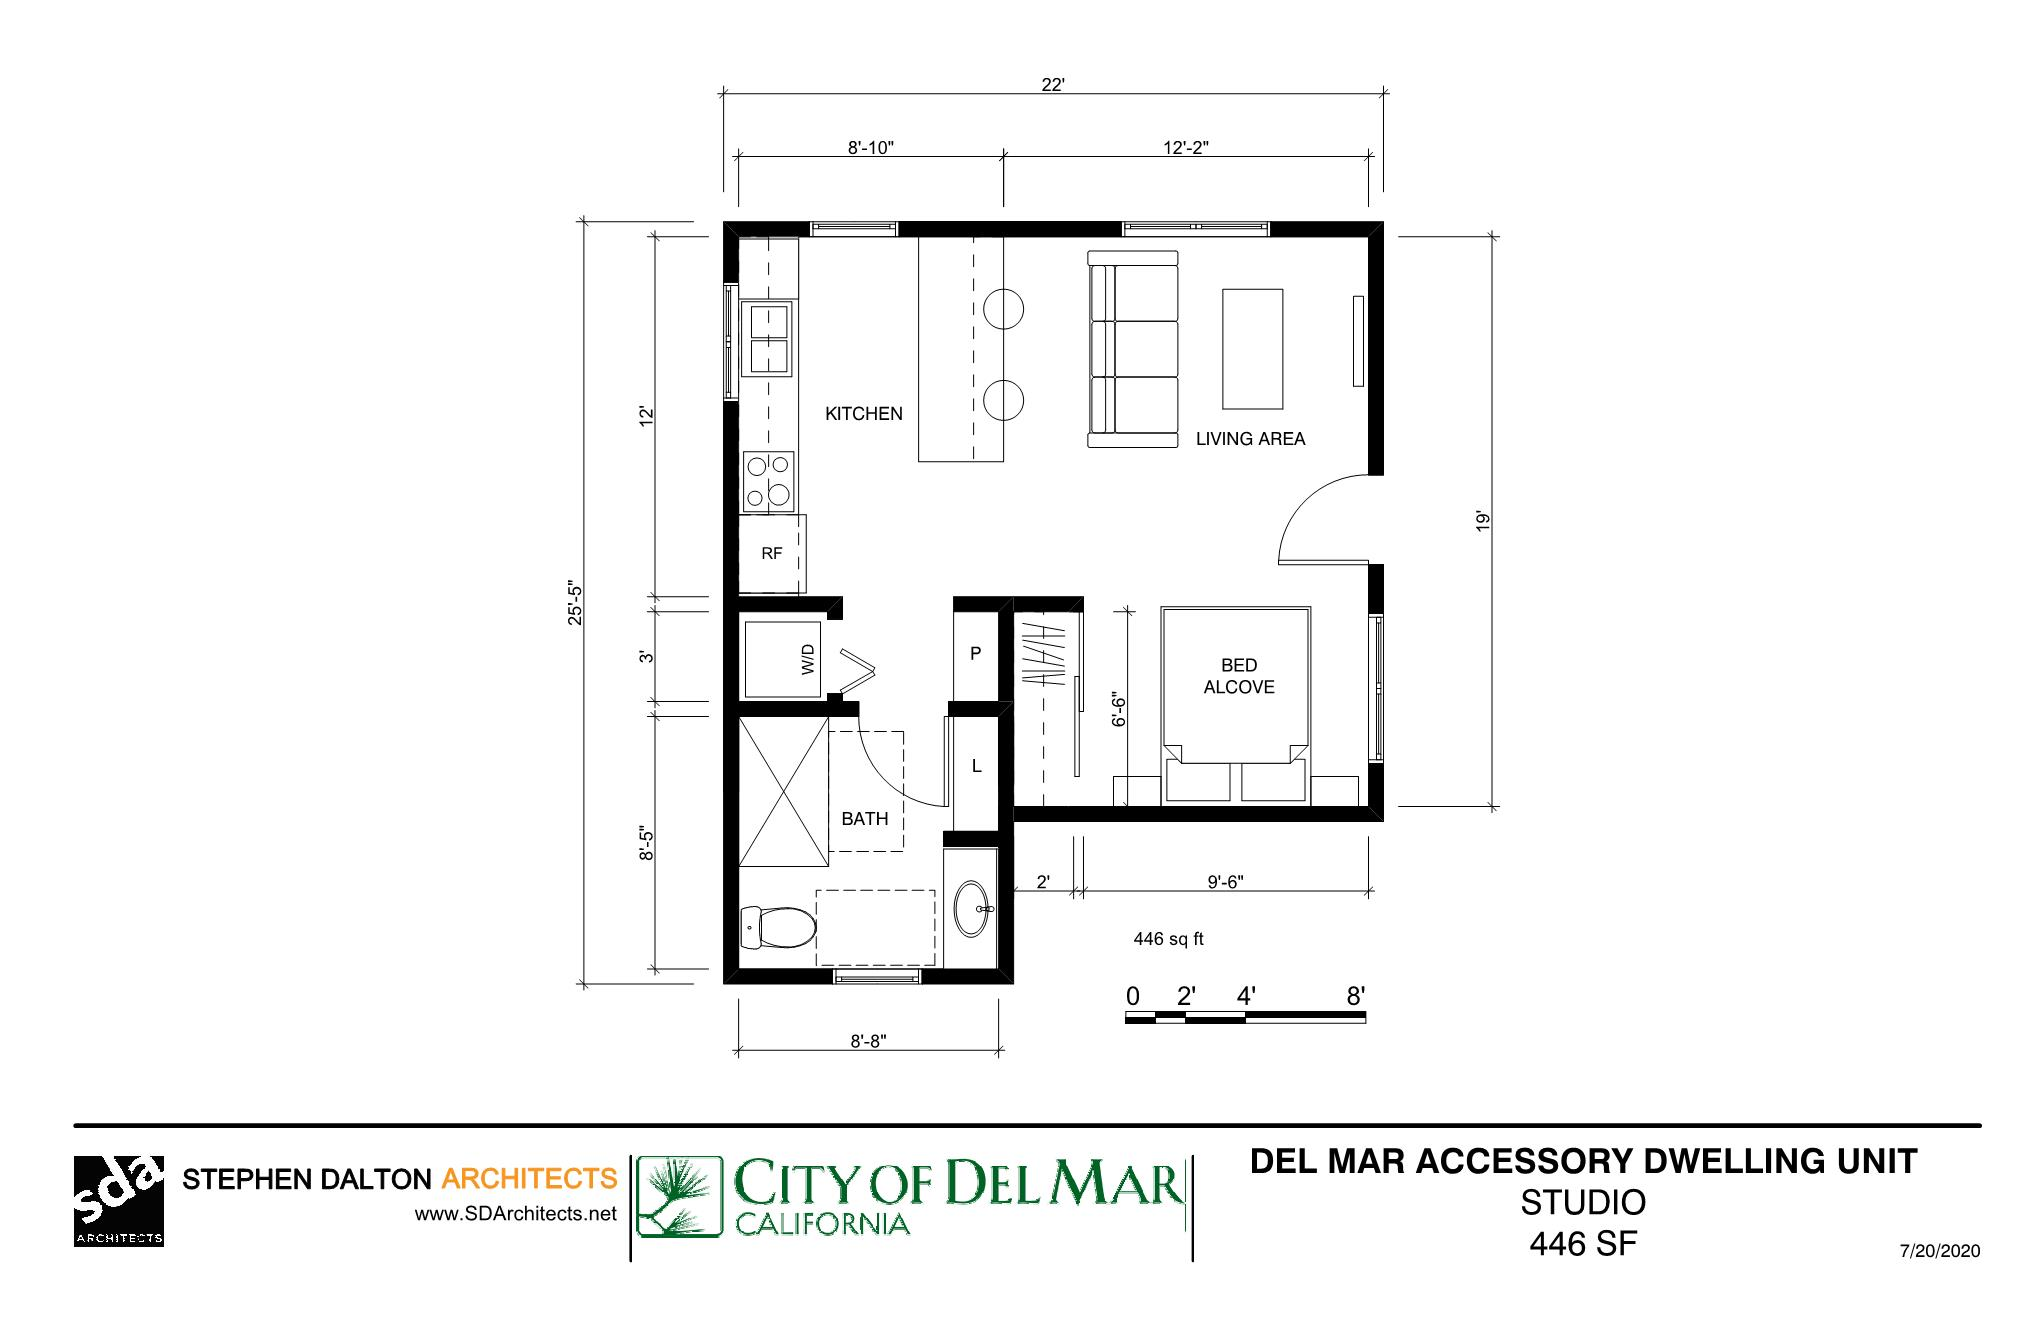 Accessory Dwelling Units Adus 3d Models And Floor Plans For Public Use Del Mar Ca Official Website